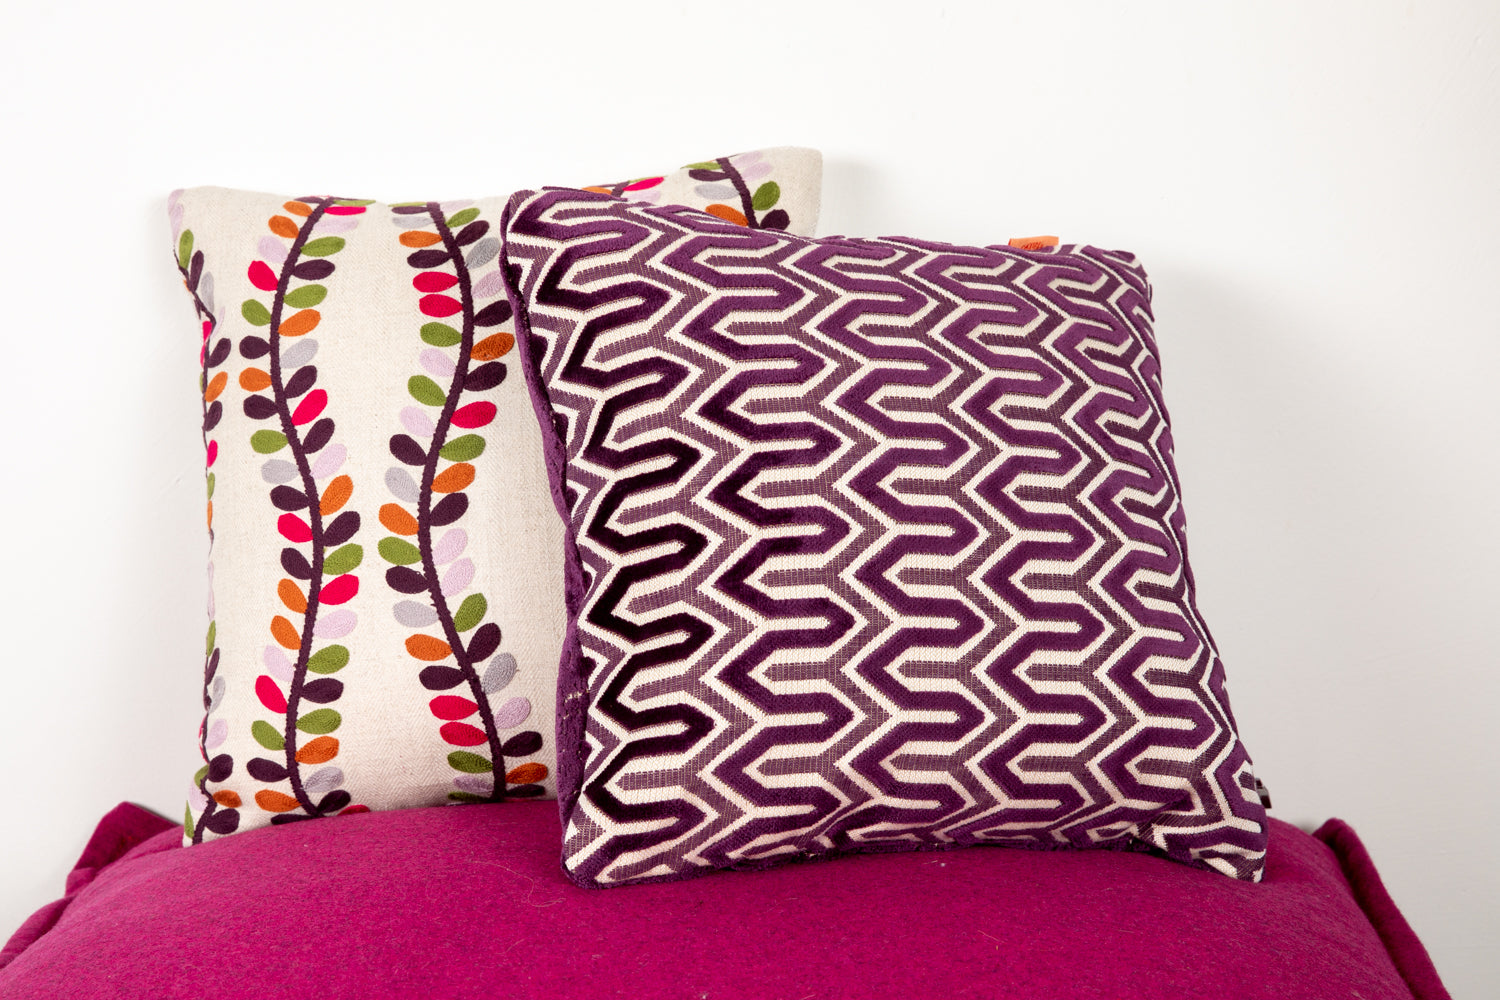 ffabb toss pillows RADG & Maxwell fabrics small scale patten woven velvet